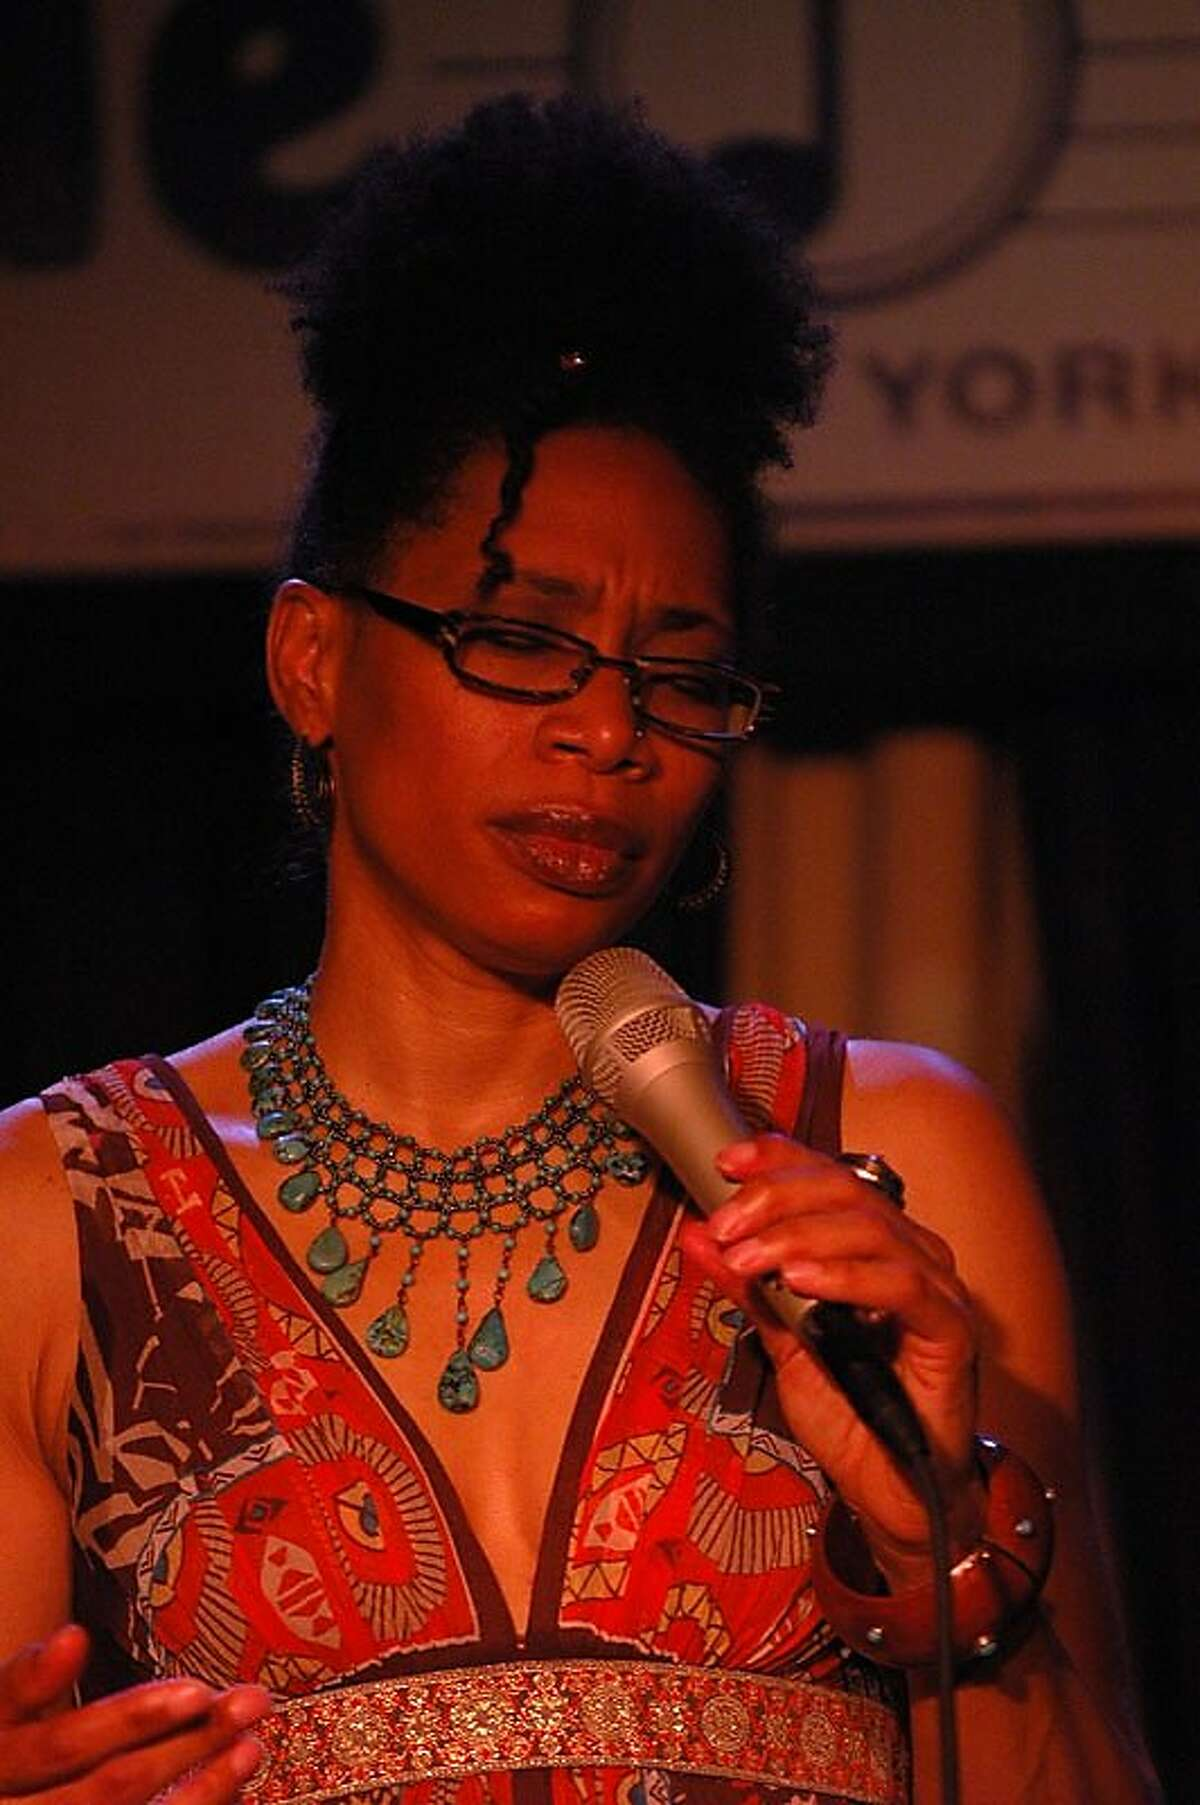 Rachelle Ferrell performs at Yoshi's on Friday, March 31.